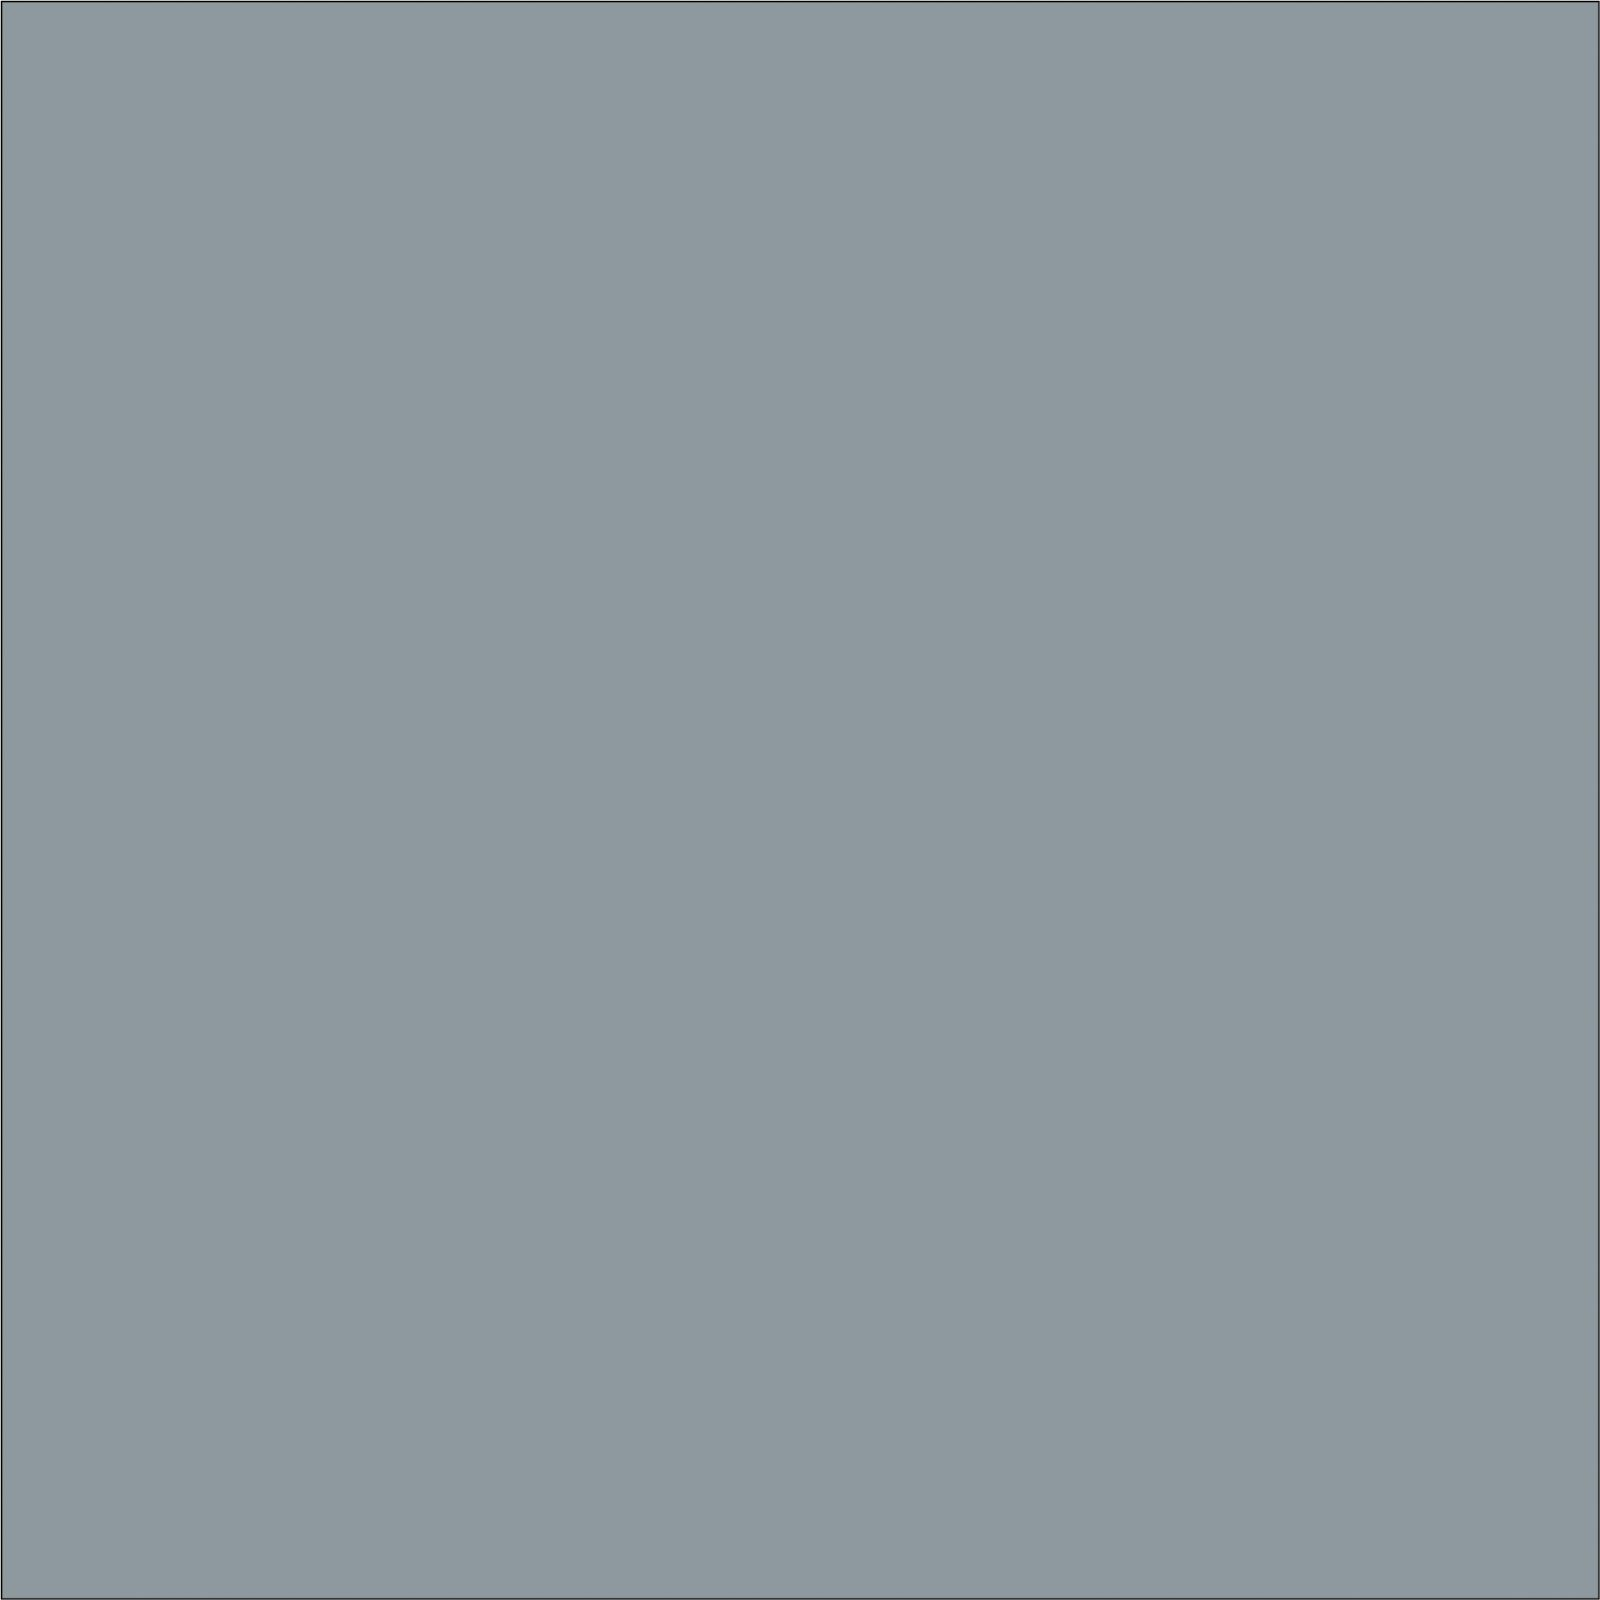 Colour Swatch of Silver Grey